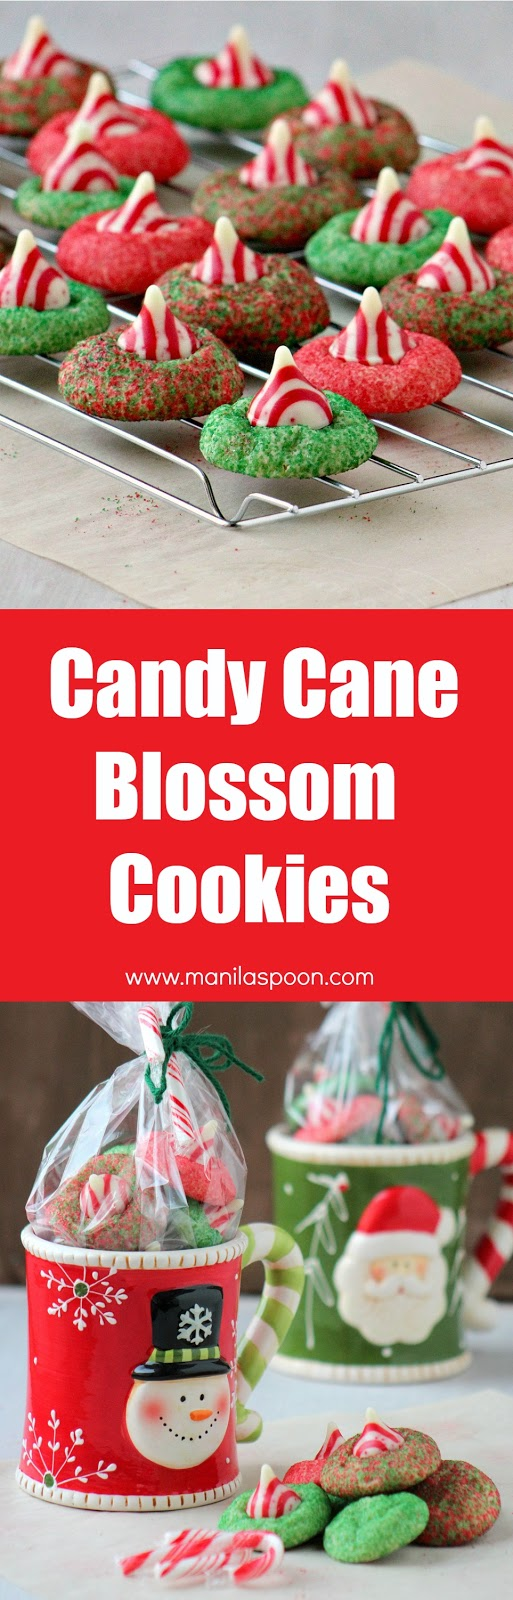 These festive classic Candy Cane Blossom Cookies are not just gorgeous they are delicious, too. Perfect as gift for teachers, family, and friends.I gave this as a gift in a mug and it was well-loved! | manilaspoon